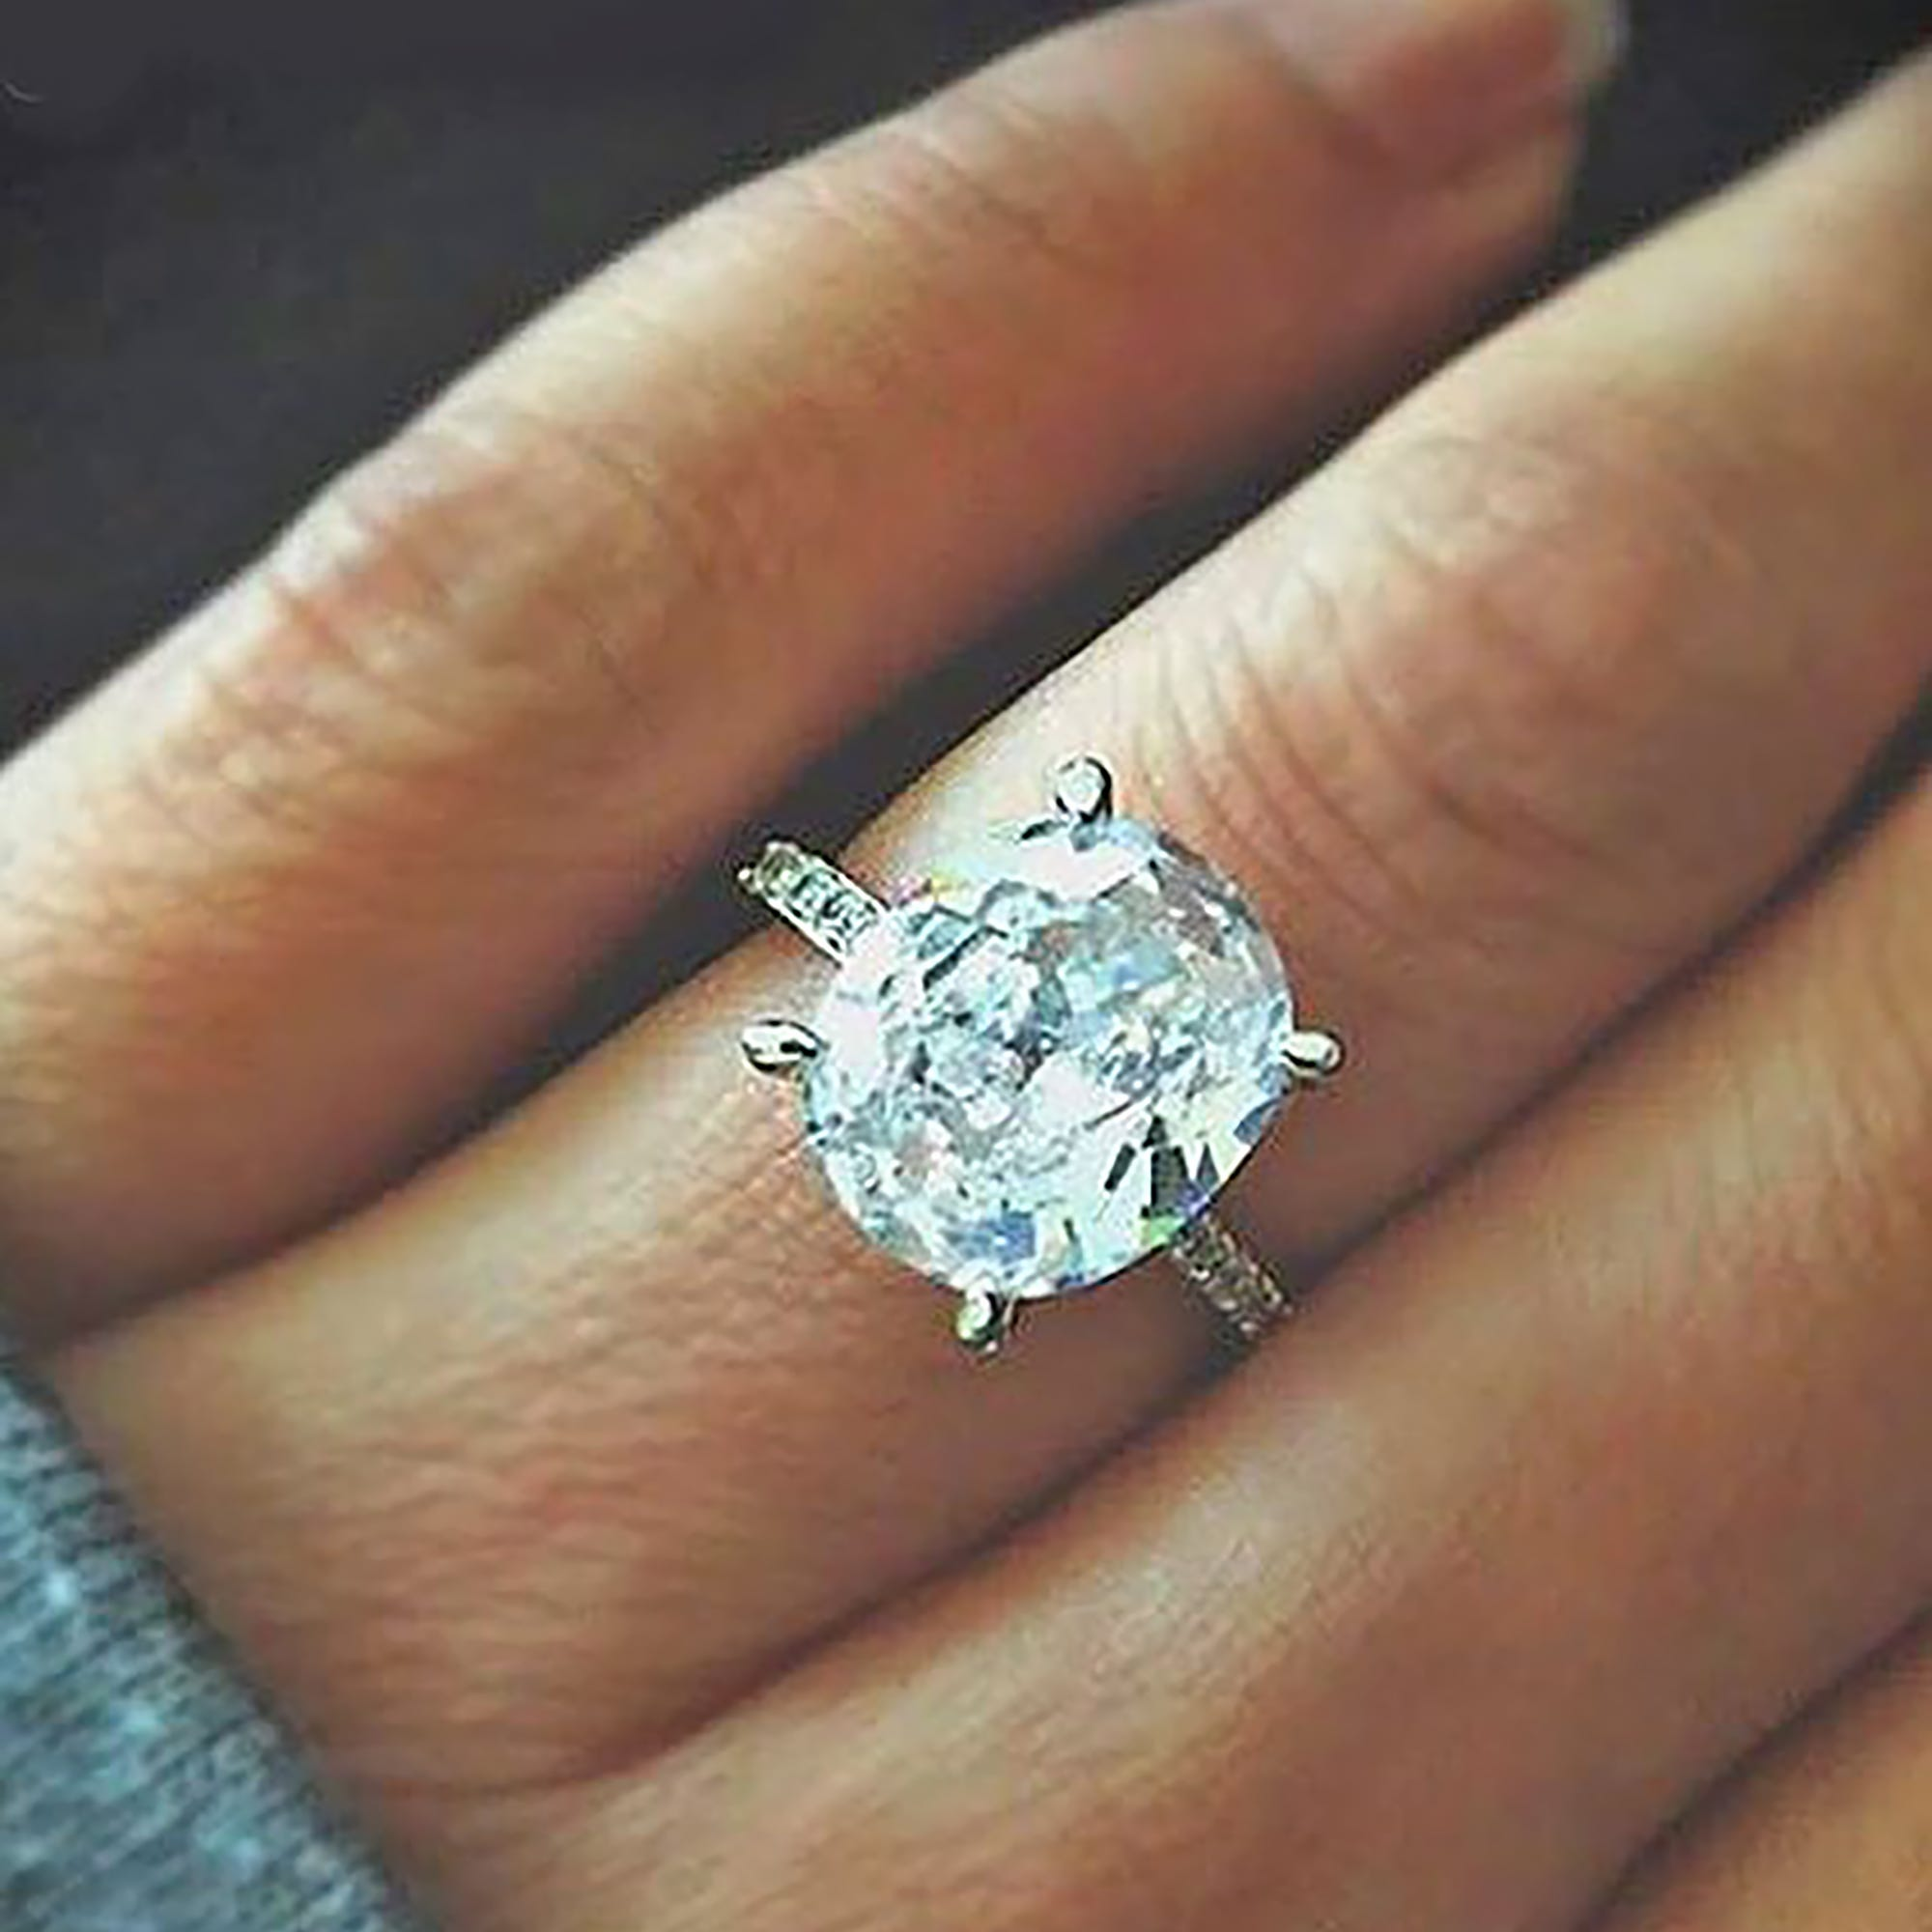 engagement rings bazaar brides perfect buccellatti news uk best the of